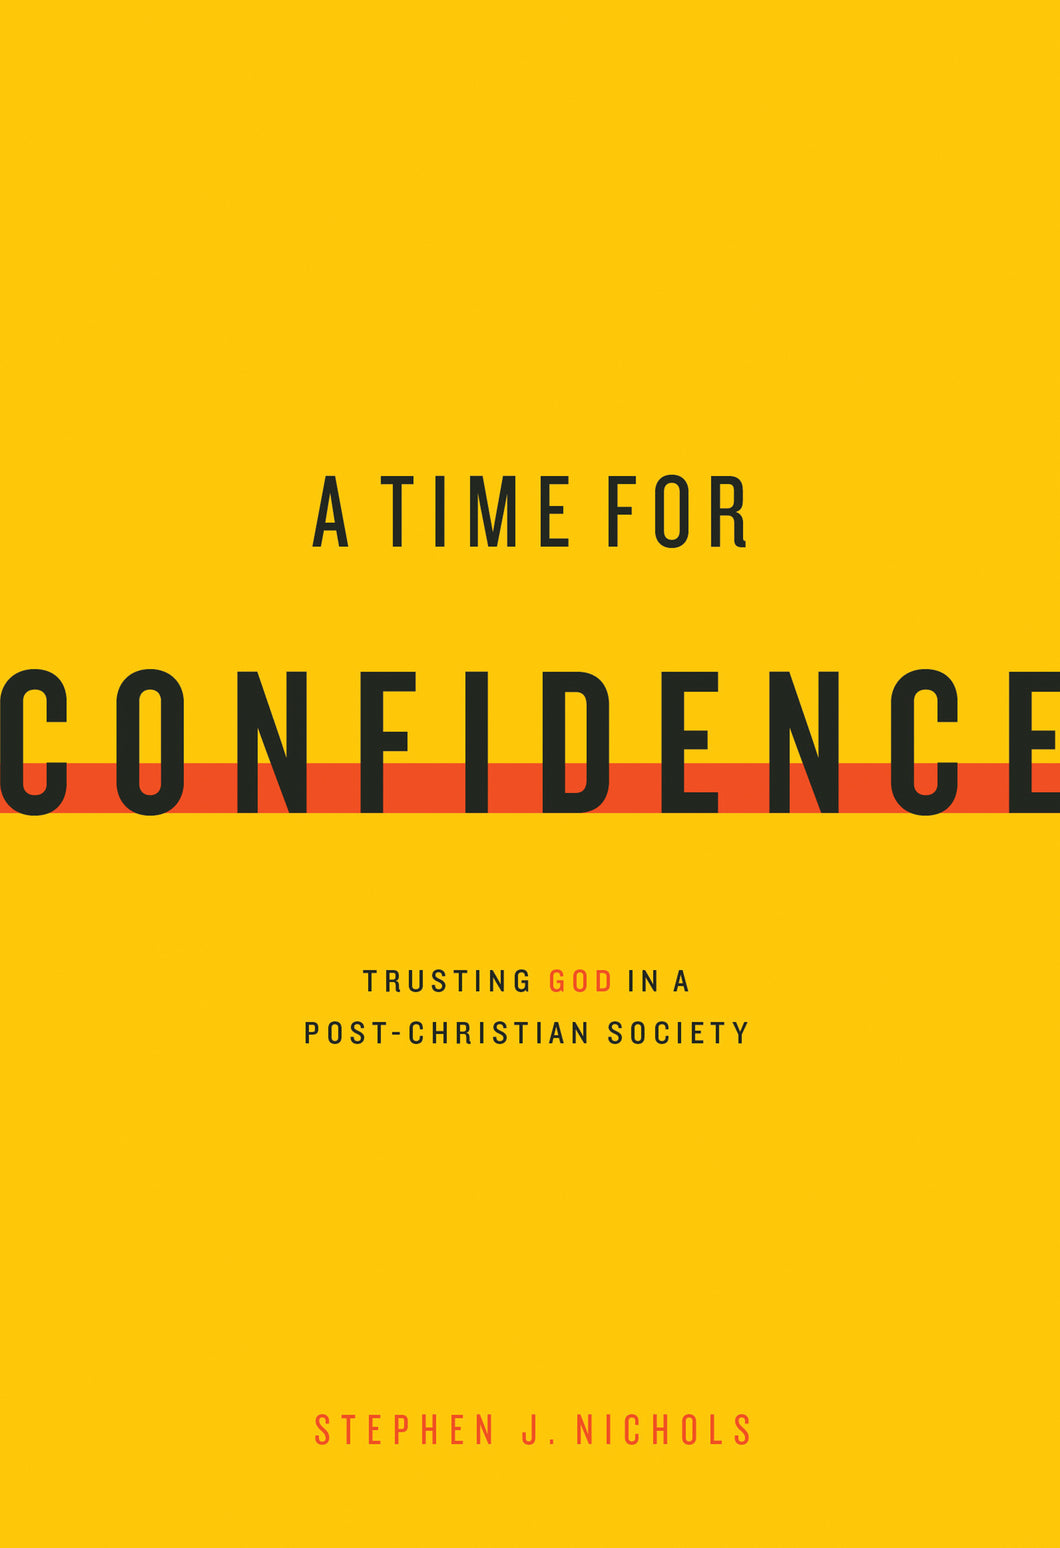 A Time for Confidence: Trusting God in a Post-Christian Society — Paperback